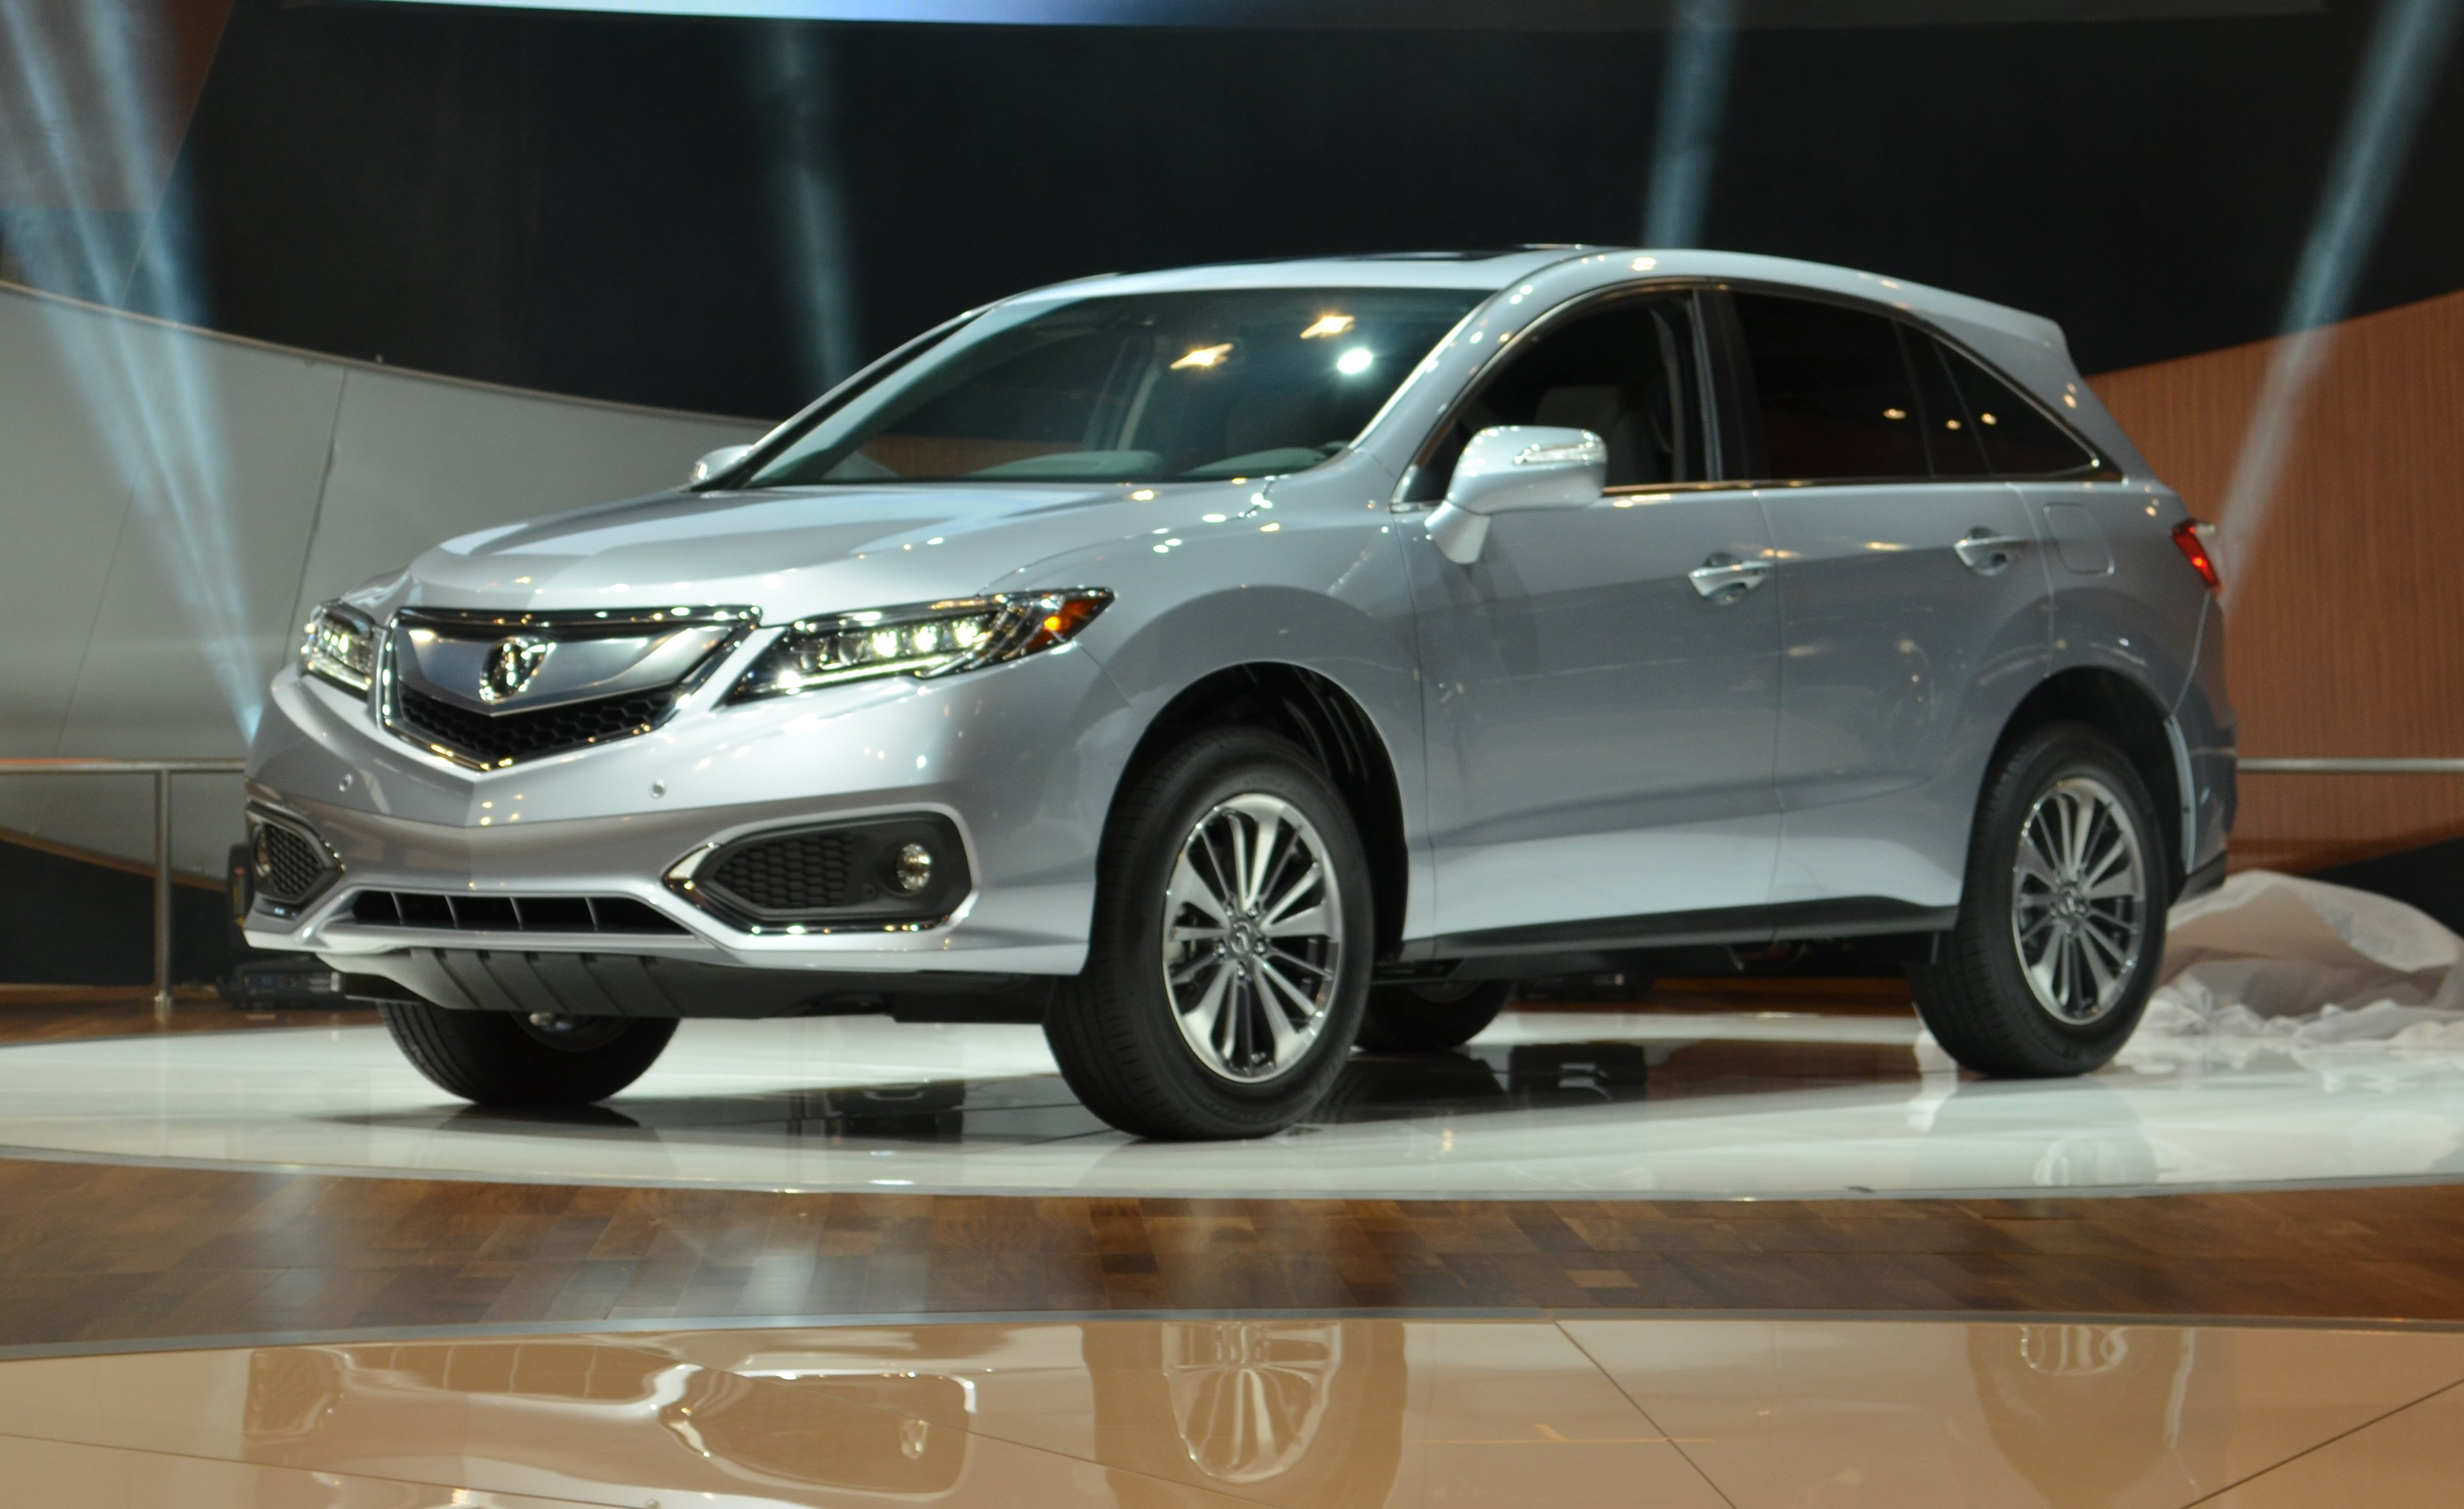 You could say acura s rdx is dressed to the nines just revealed in chicago this compact crossover has been freshened for 2016 gaining things like led